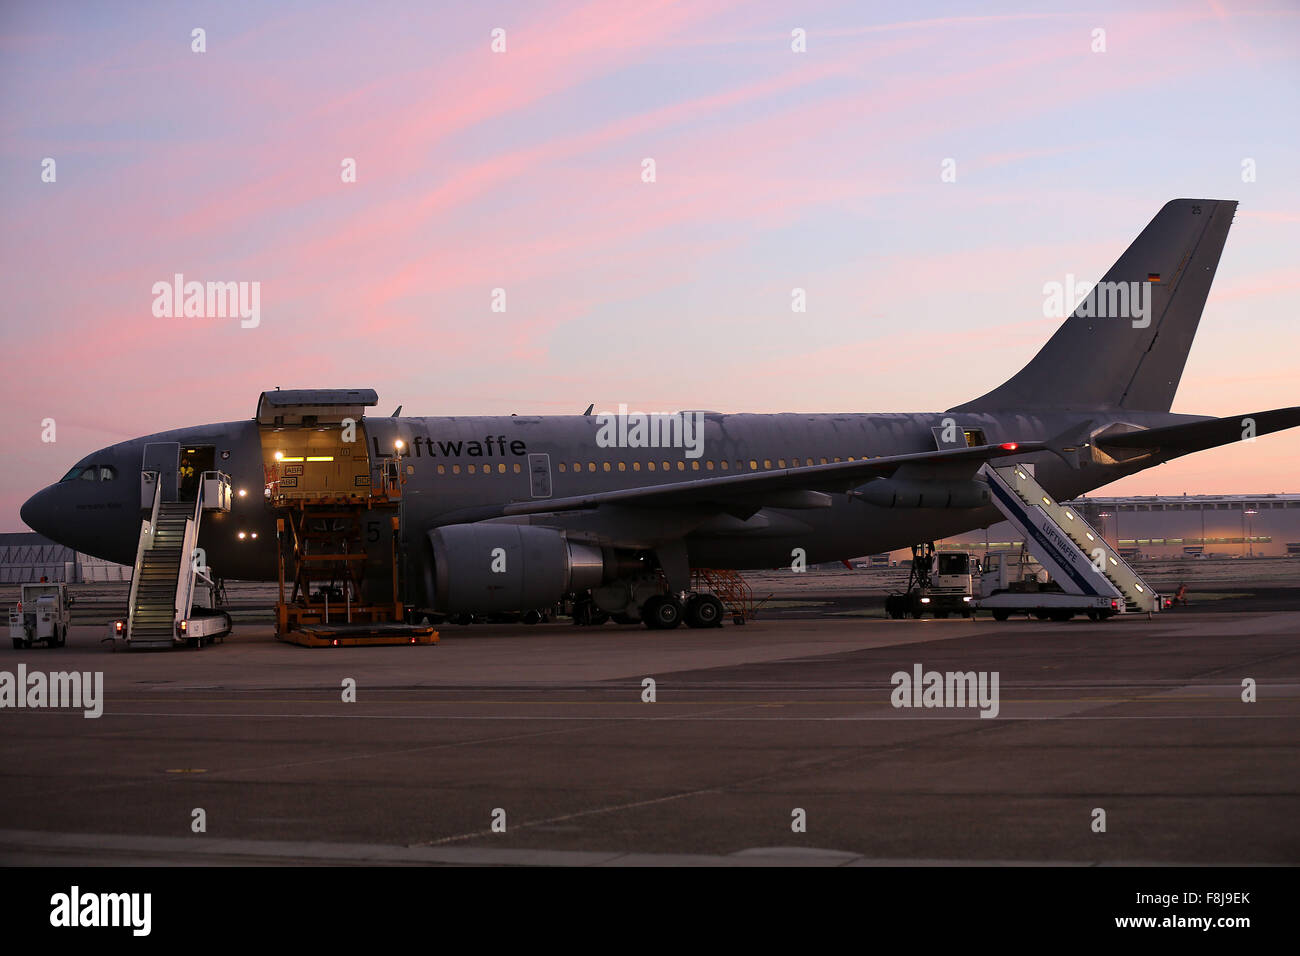 Cologne, Germany. 10th Dec, 2015. A refitted Airbus A310 refuelling aircraft parked in manoeuvring area in Cologne, - Stock Image